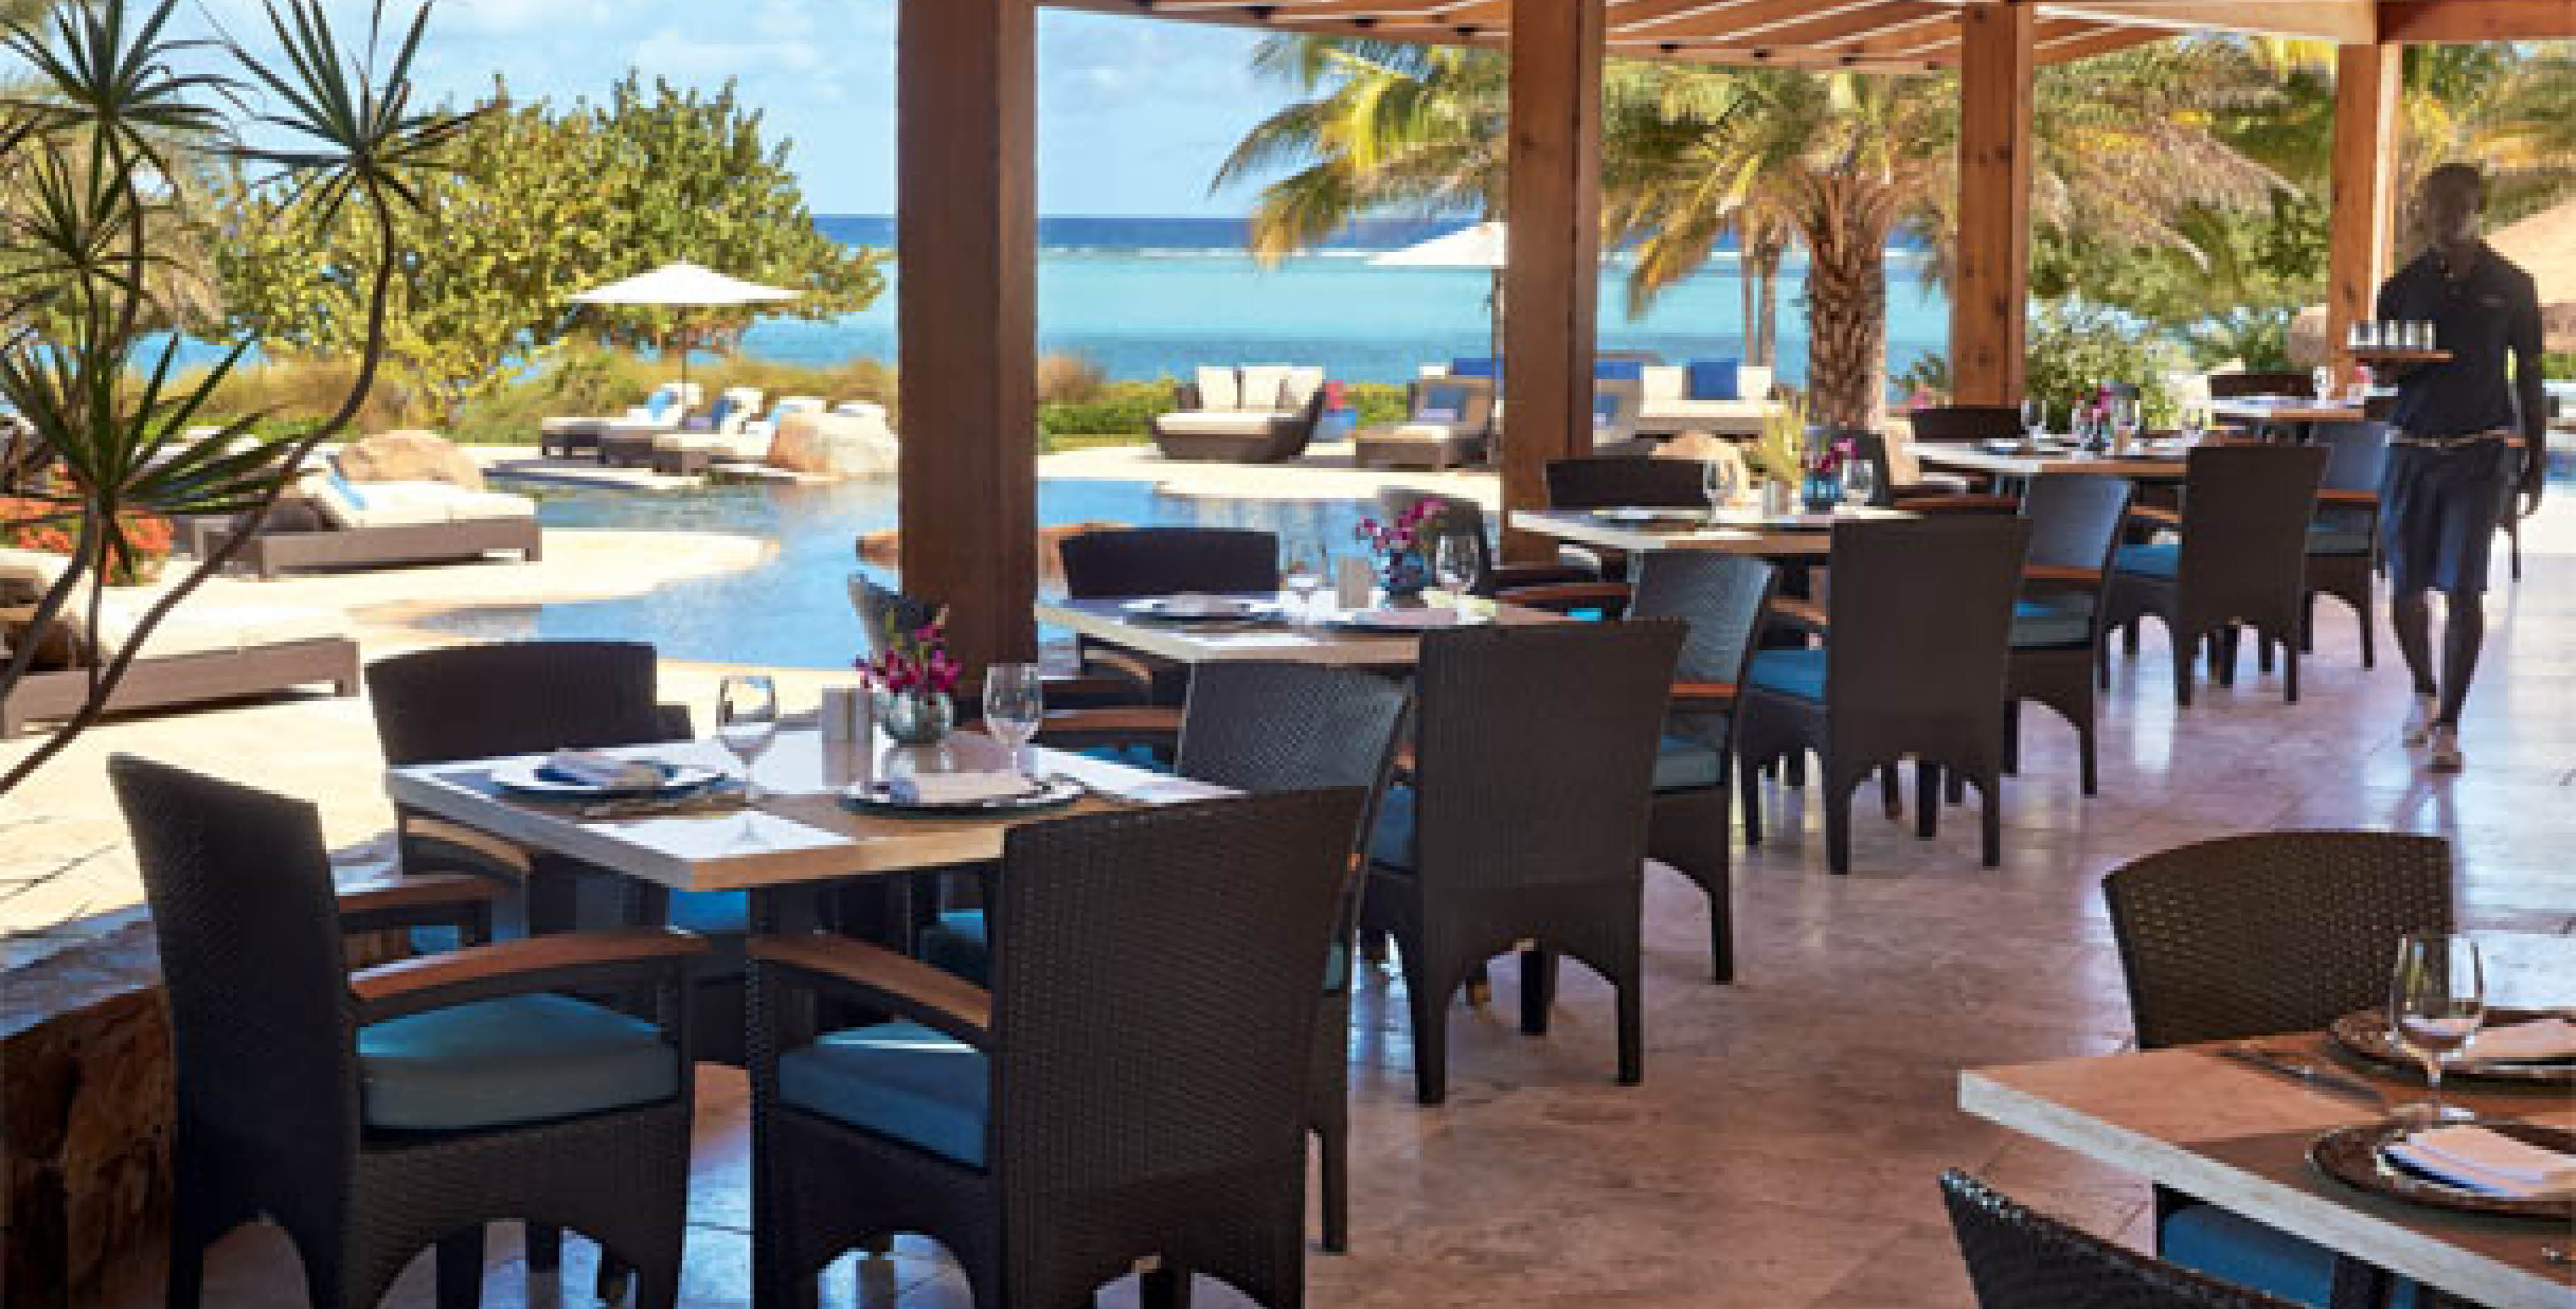 Oil Nut Bay Beach Club - Dining